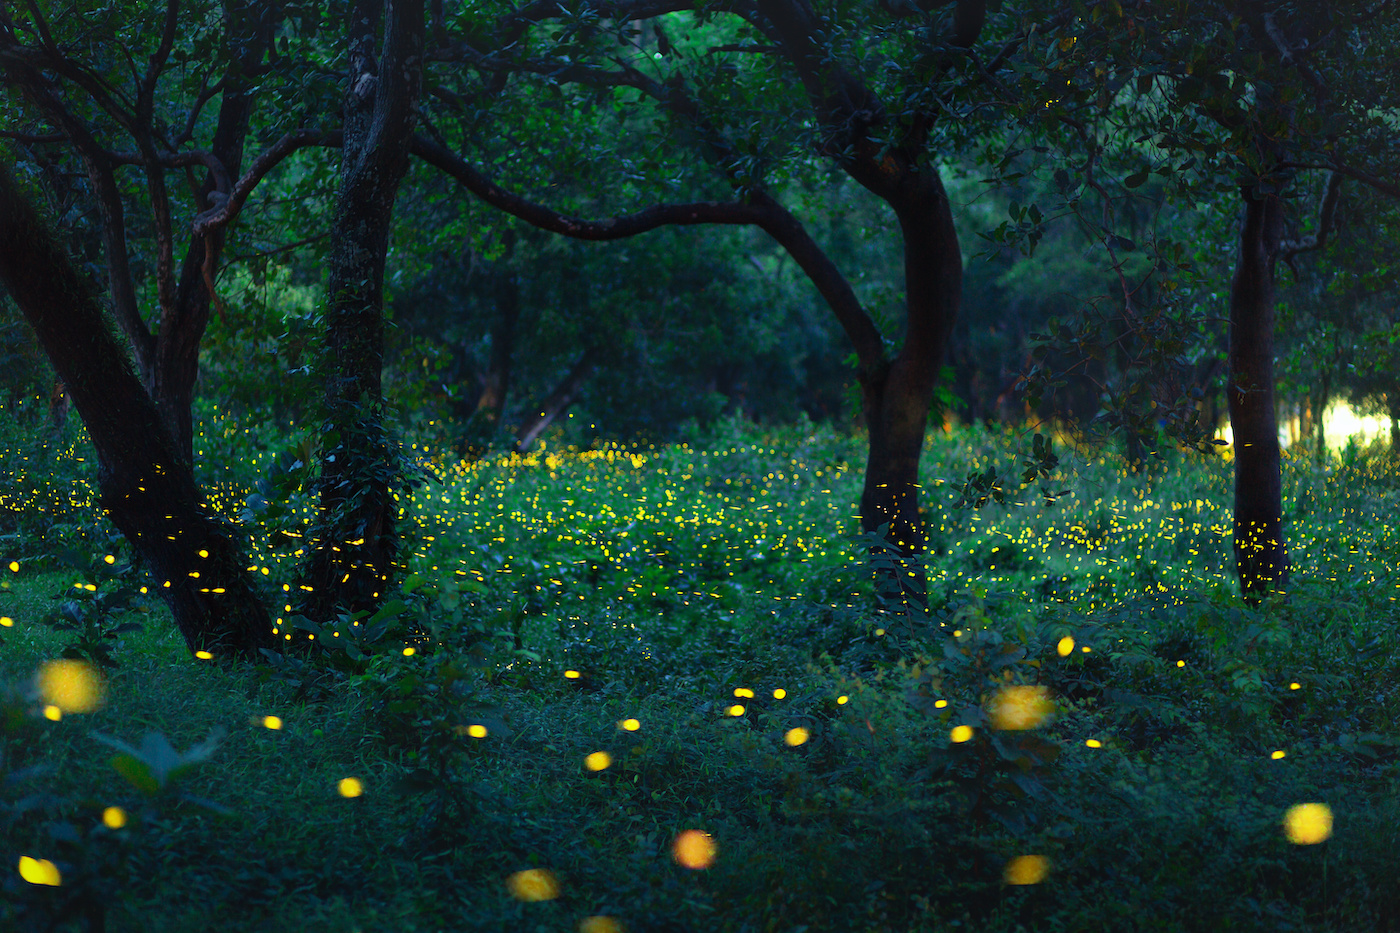 Fireflies at the edge of the forest